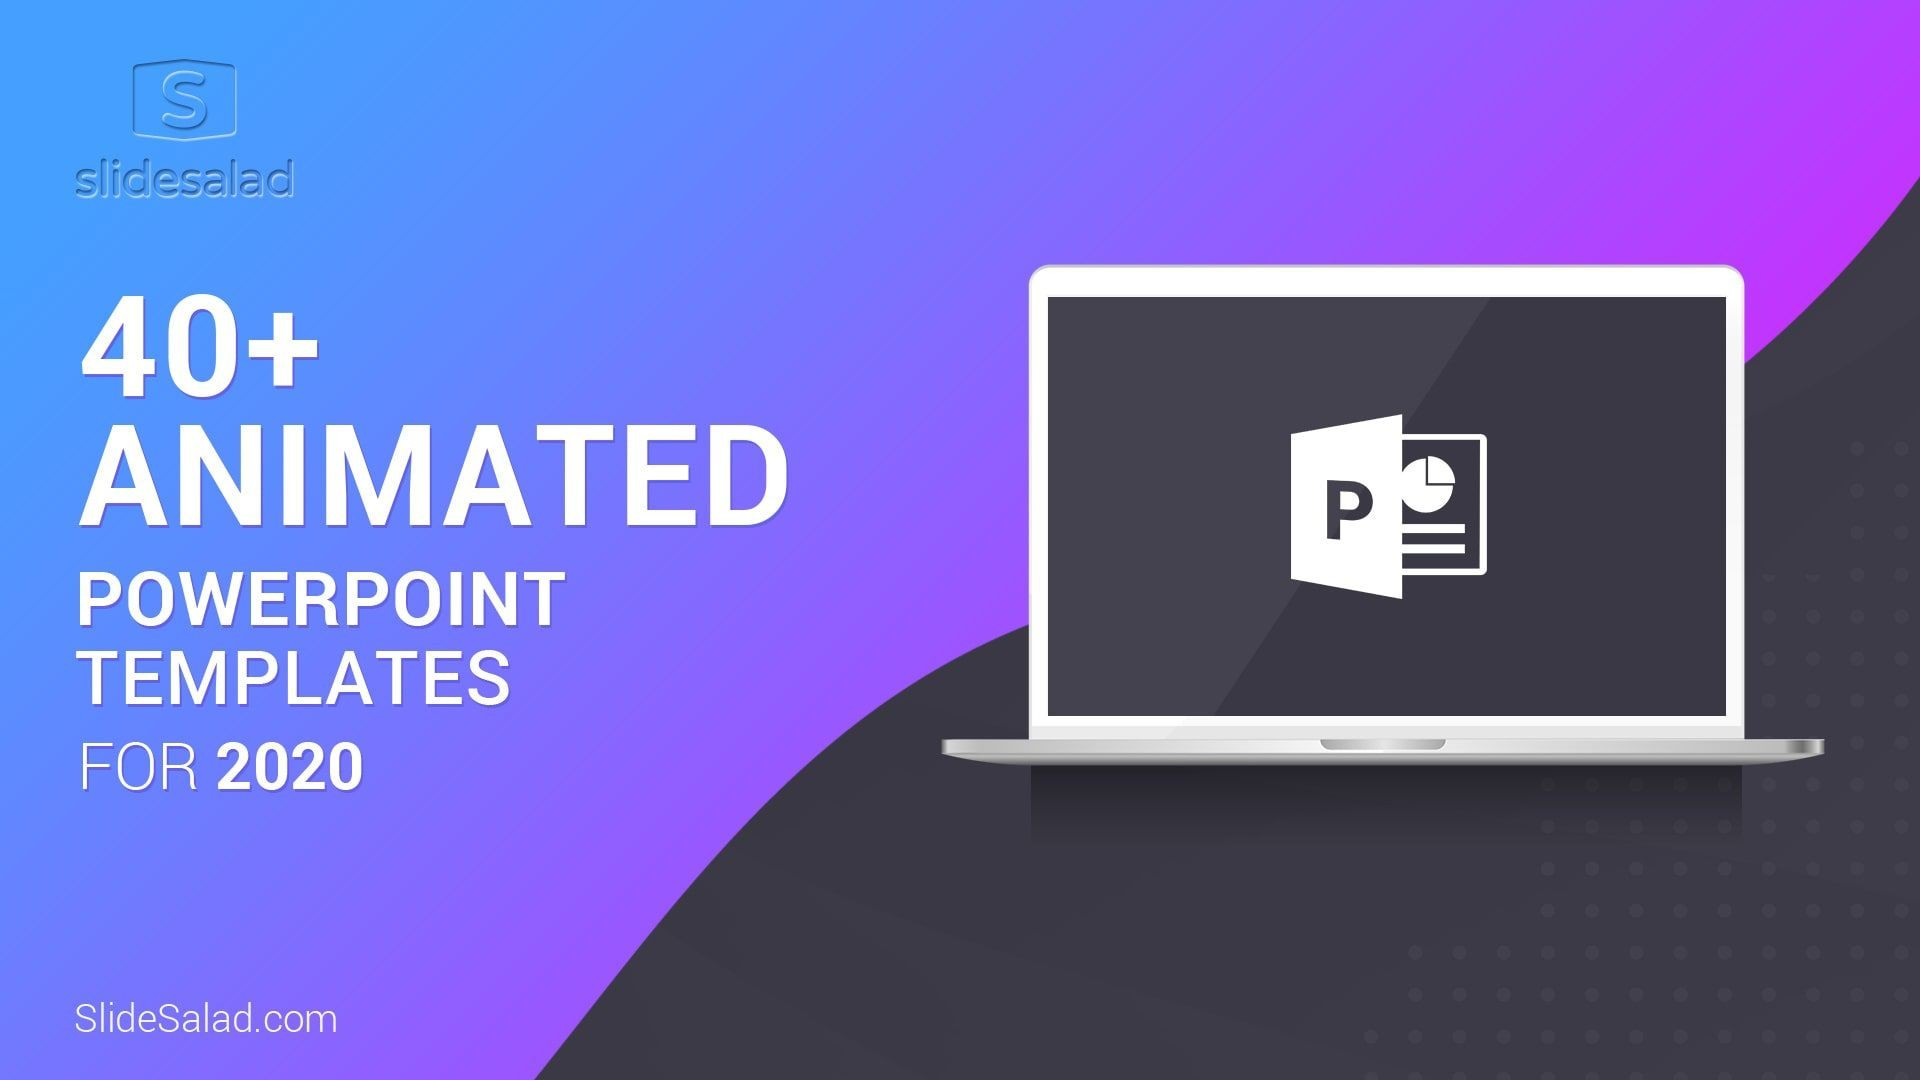 003 Striking 3d Animated Powerpoint Template Free Download 2016 Example 1920